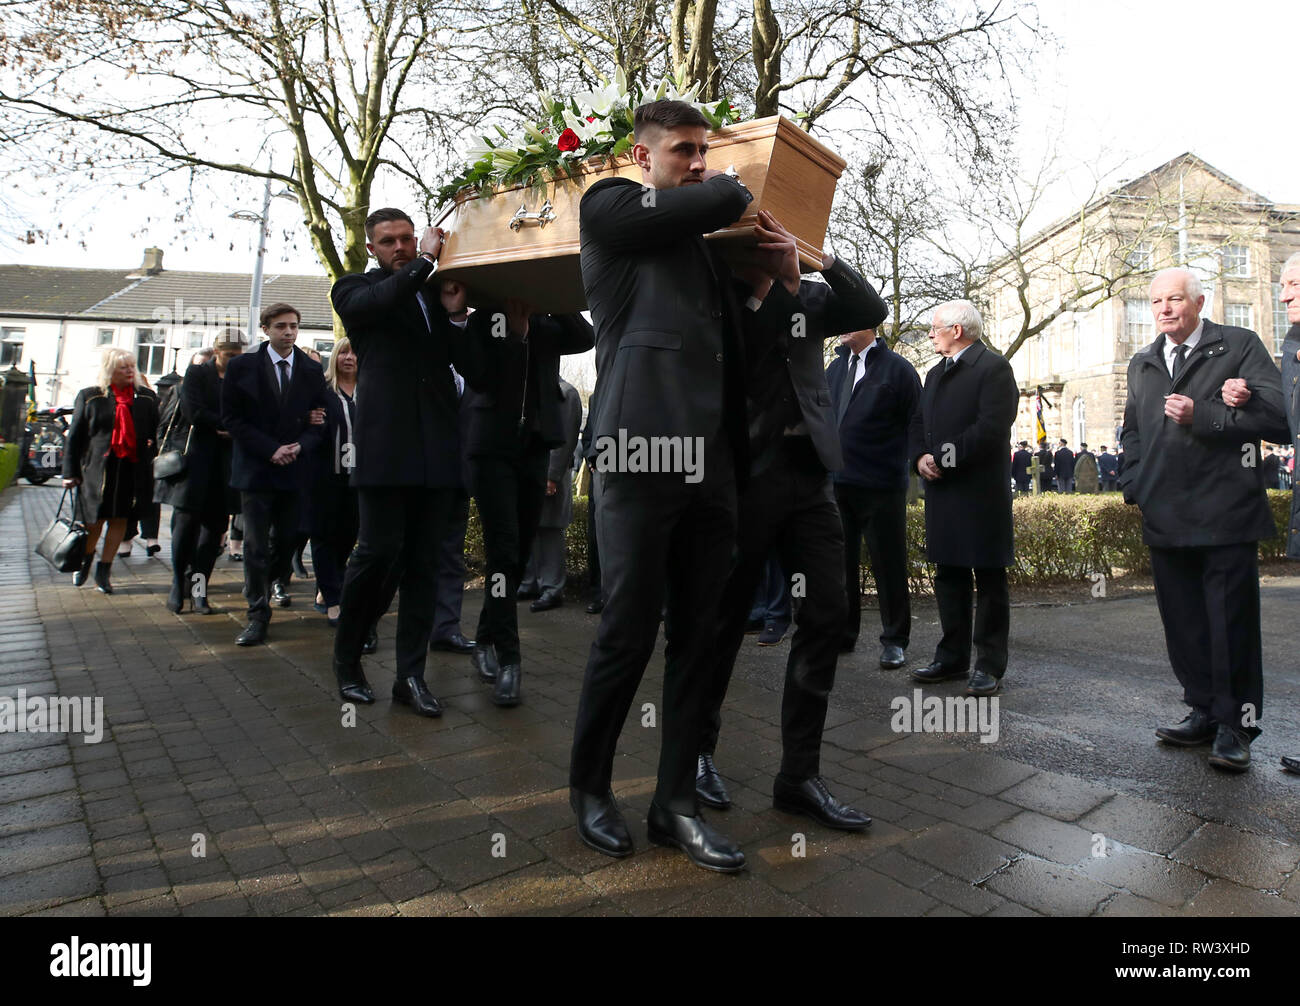 Stoke City goalkeeper Jack Butland (back left) and Chesterfield goalkeeper Joe Anyon (front left) carry the coffin during the funeral service for Gordon Banks at Stoke Minster. - Stock Image